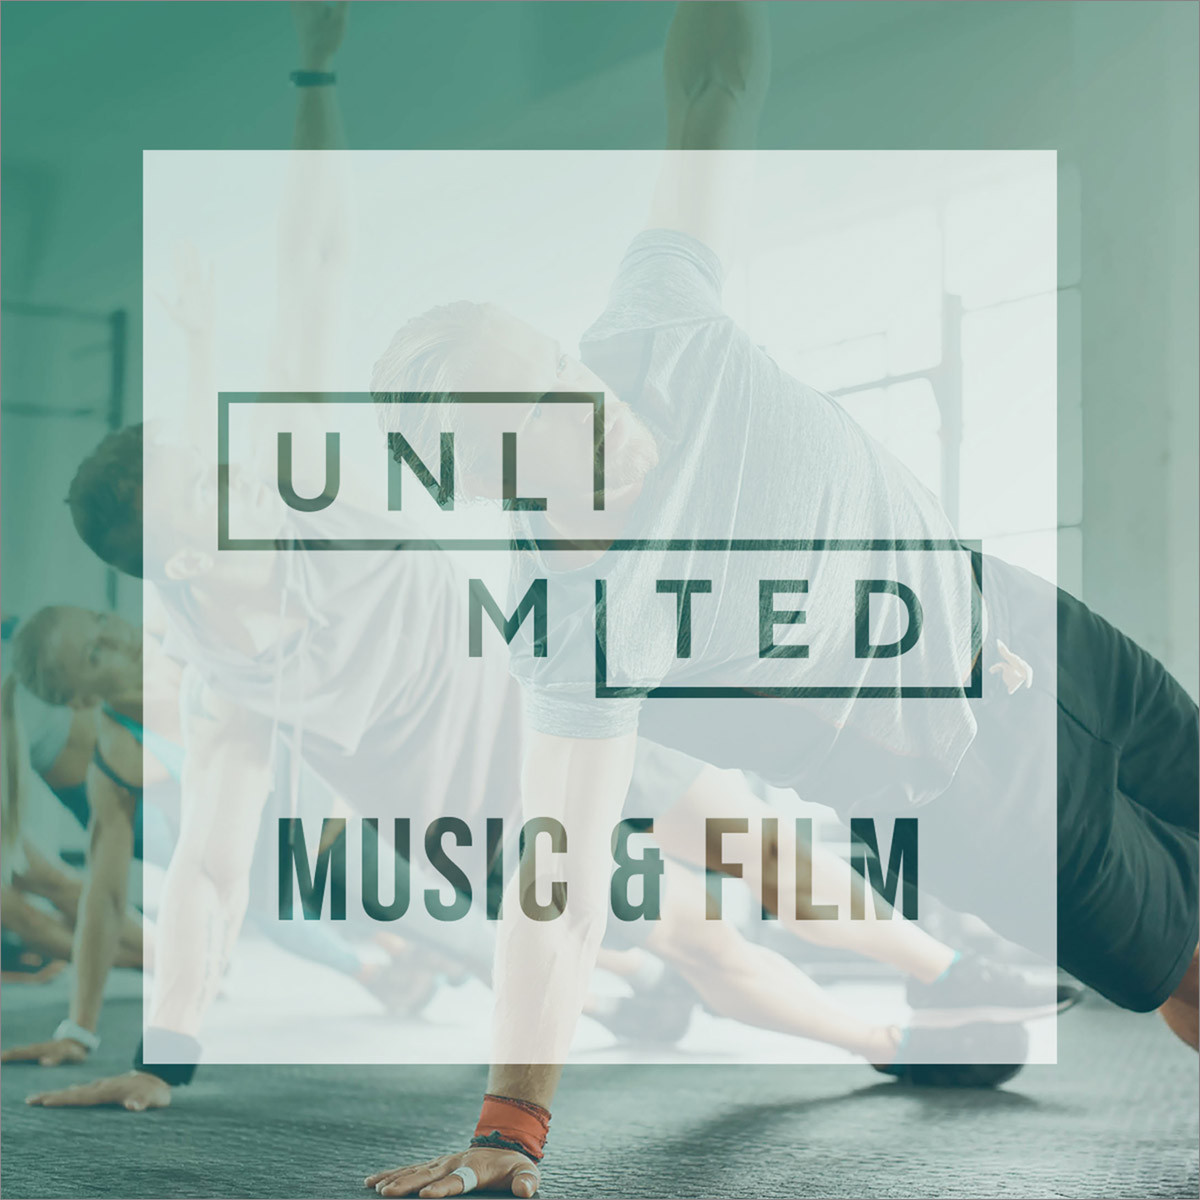 MY! UNLIMITED FREE Music & Film - Gym Group III